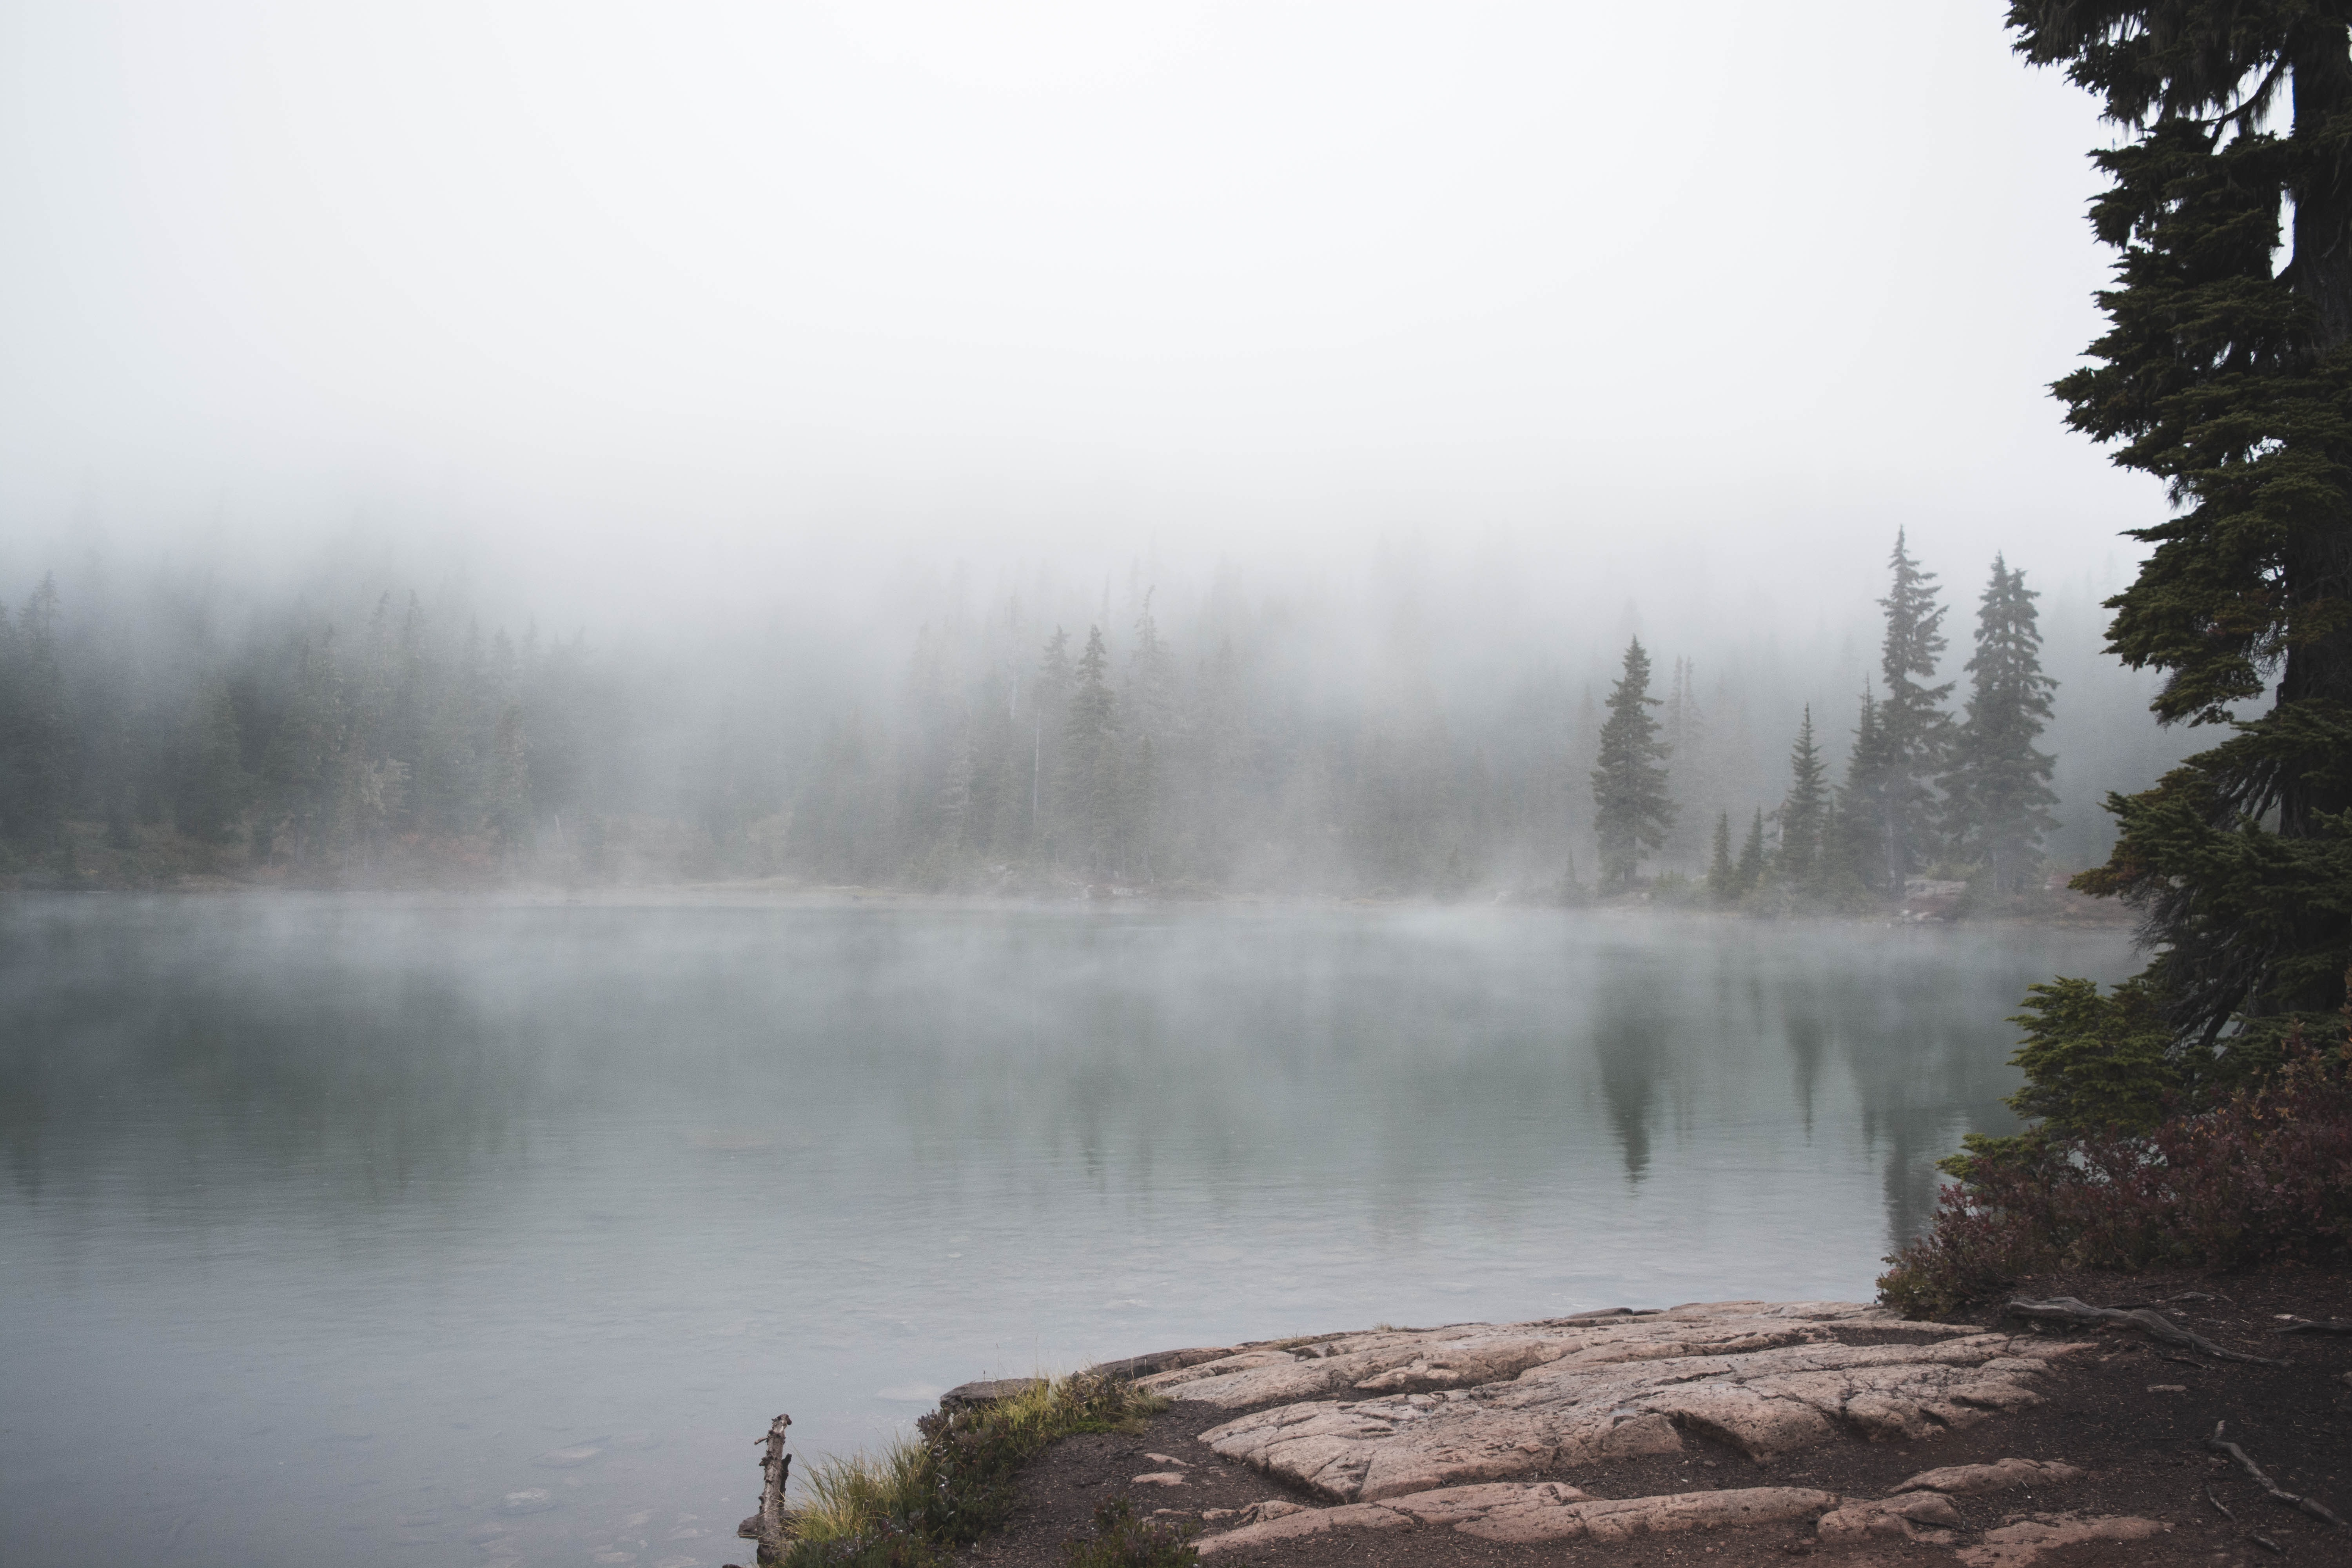 calm lake with mist during daytime